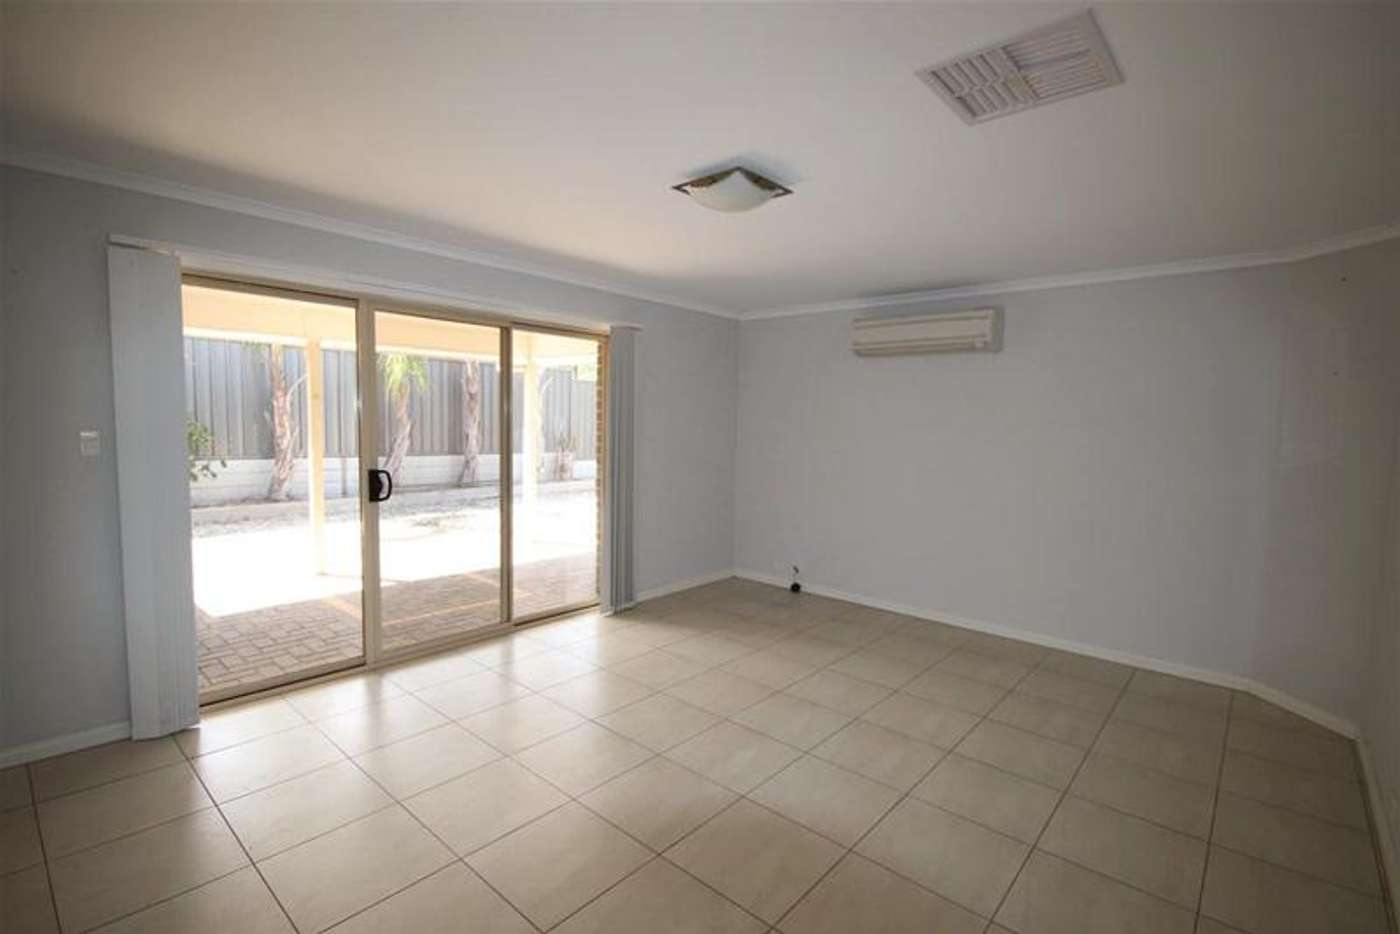 Fifth view of Homely house listing, 14 Bunyip Way, Mannum SA 5238